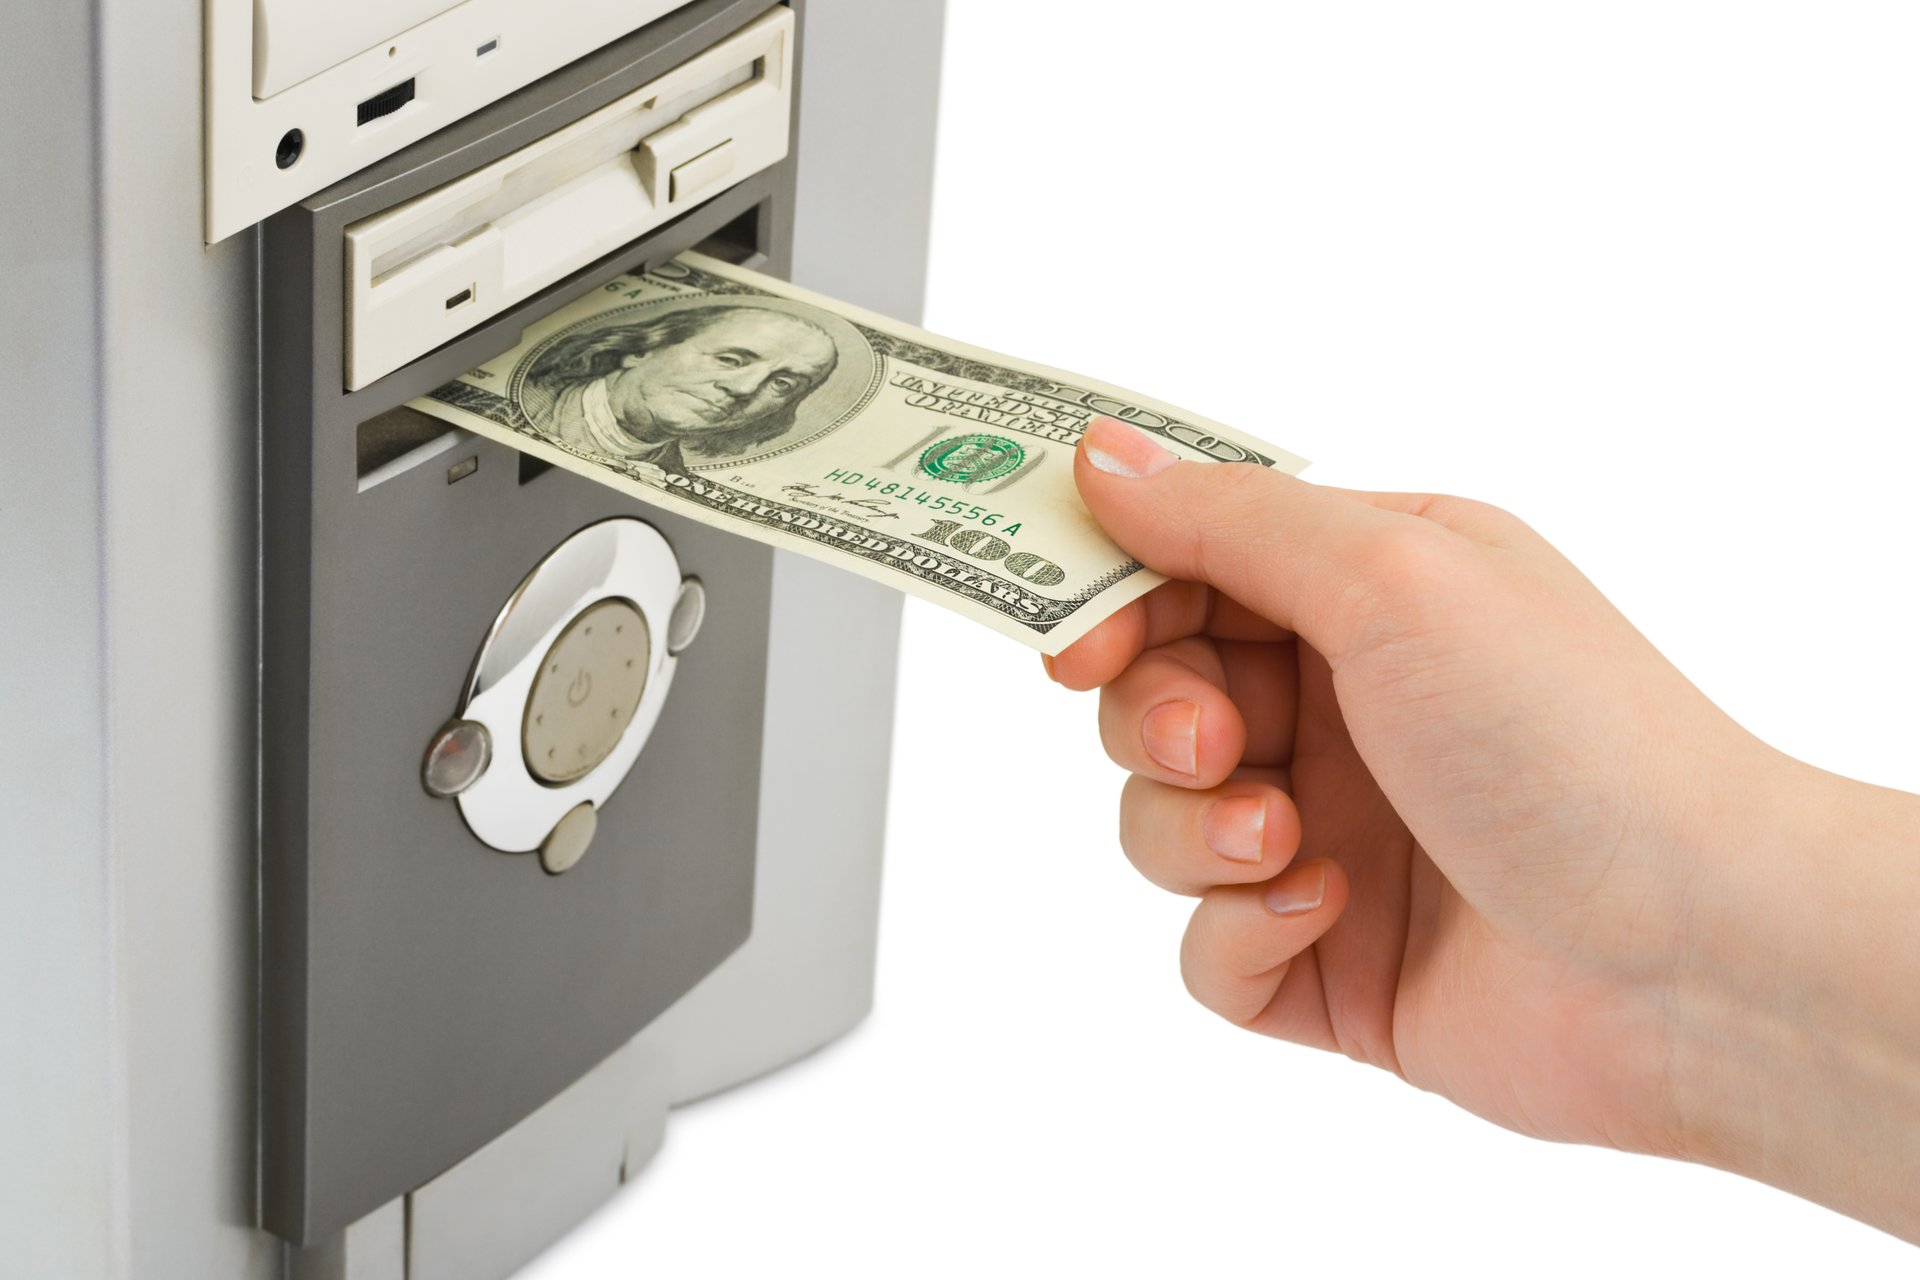 Withdrawing money